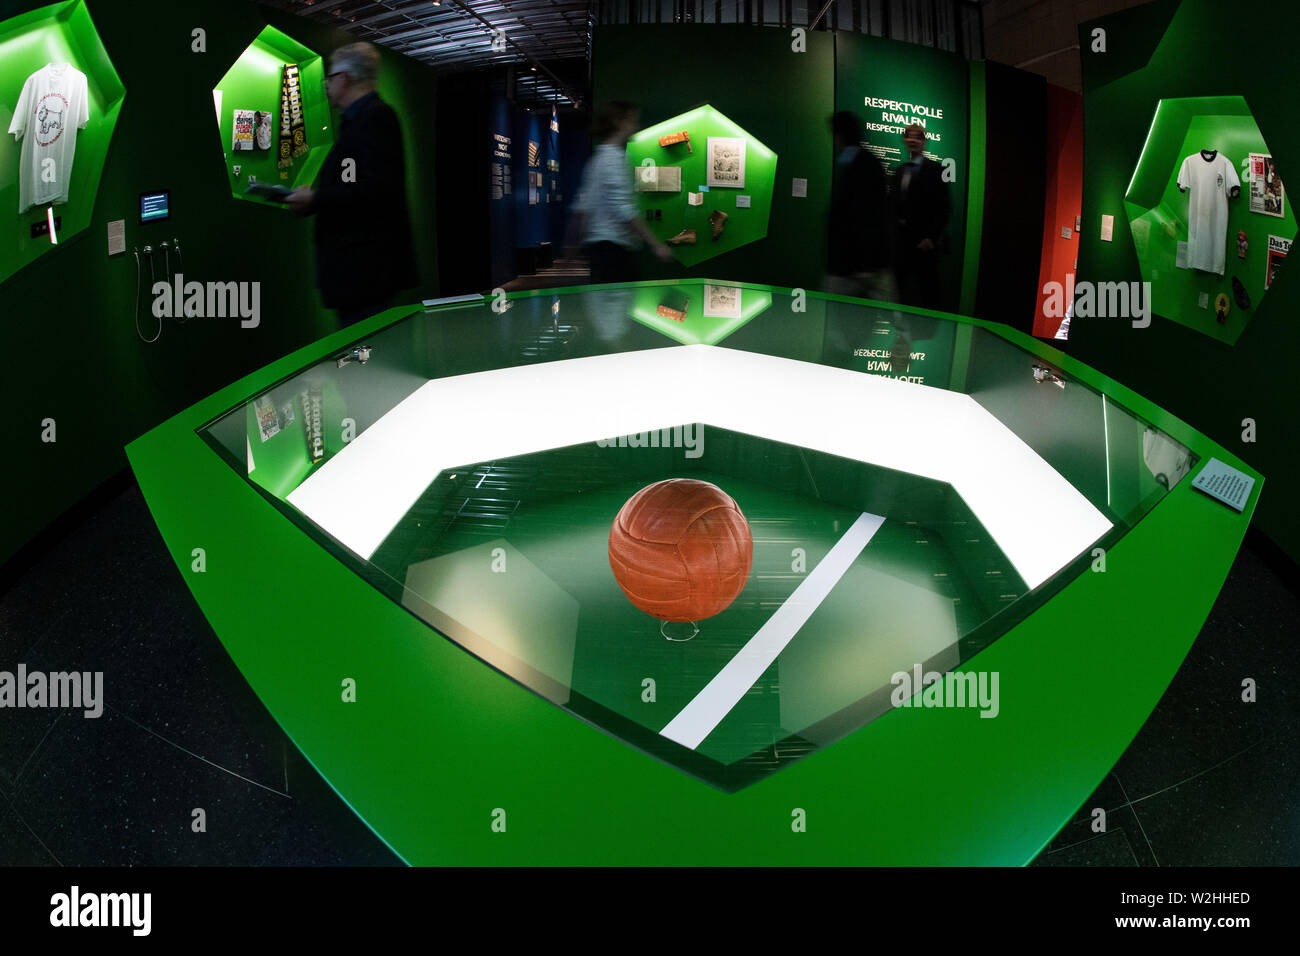 """Bonn, Germany. 09th July, 2019. The match ball of the 1966 World Cup Final at Wembley Stadium is in a display case. The exhibition """"Very British"""" at the Haus der Geschichte deals with the German-British relationship since 1945. Credit: Federico Gambarini/dpa/Alamy Live News Stock Photo"""